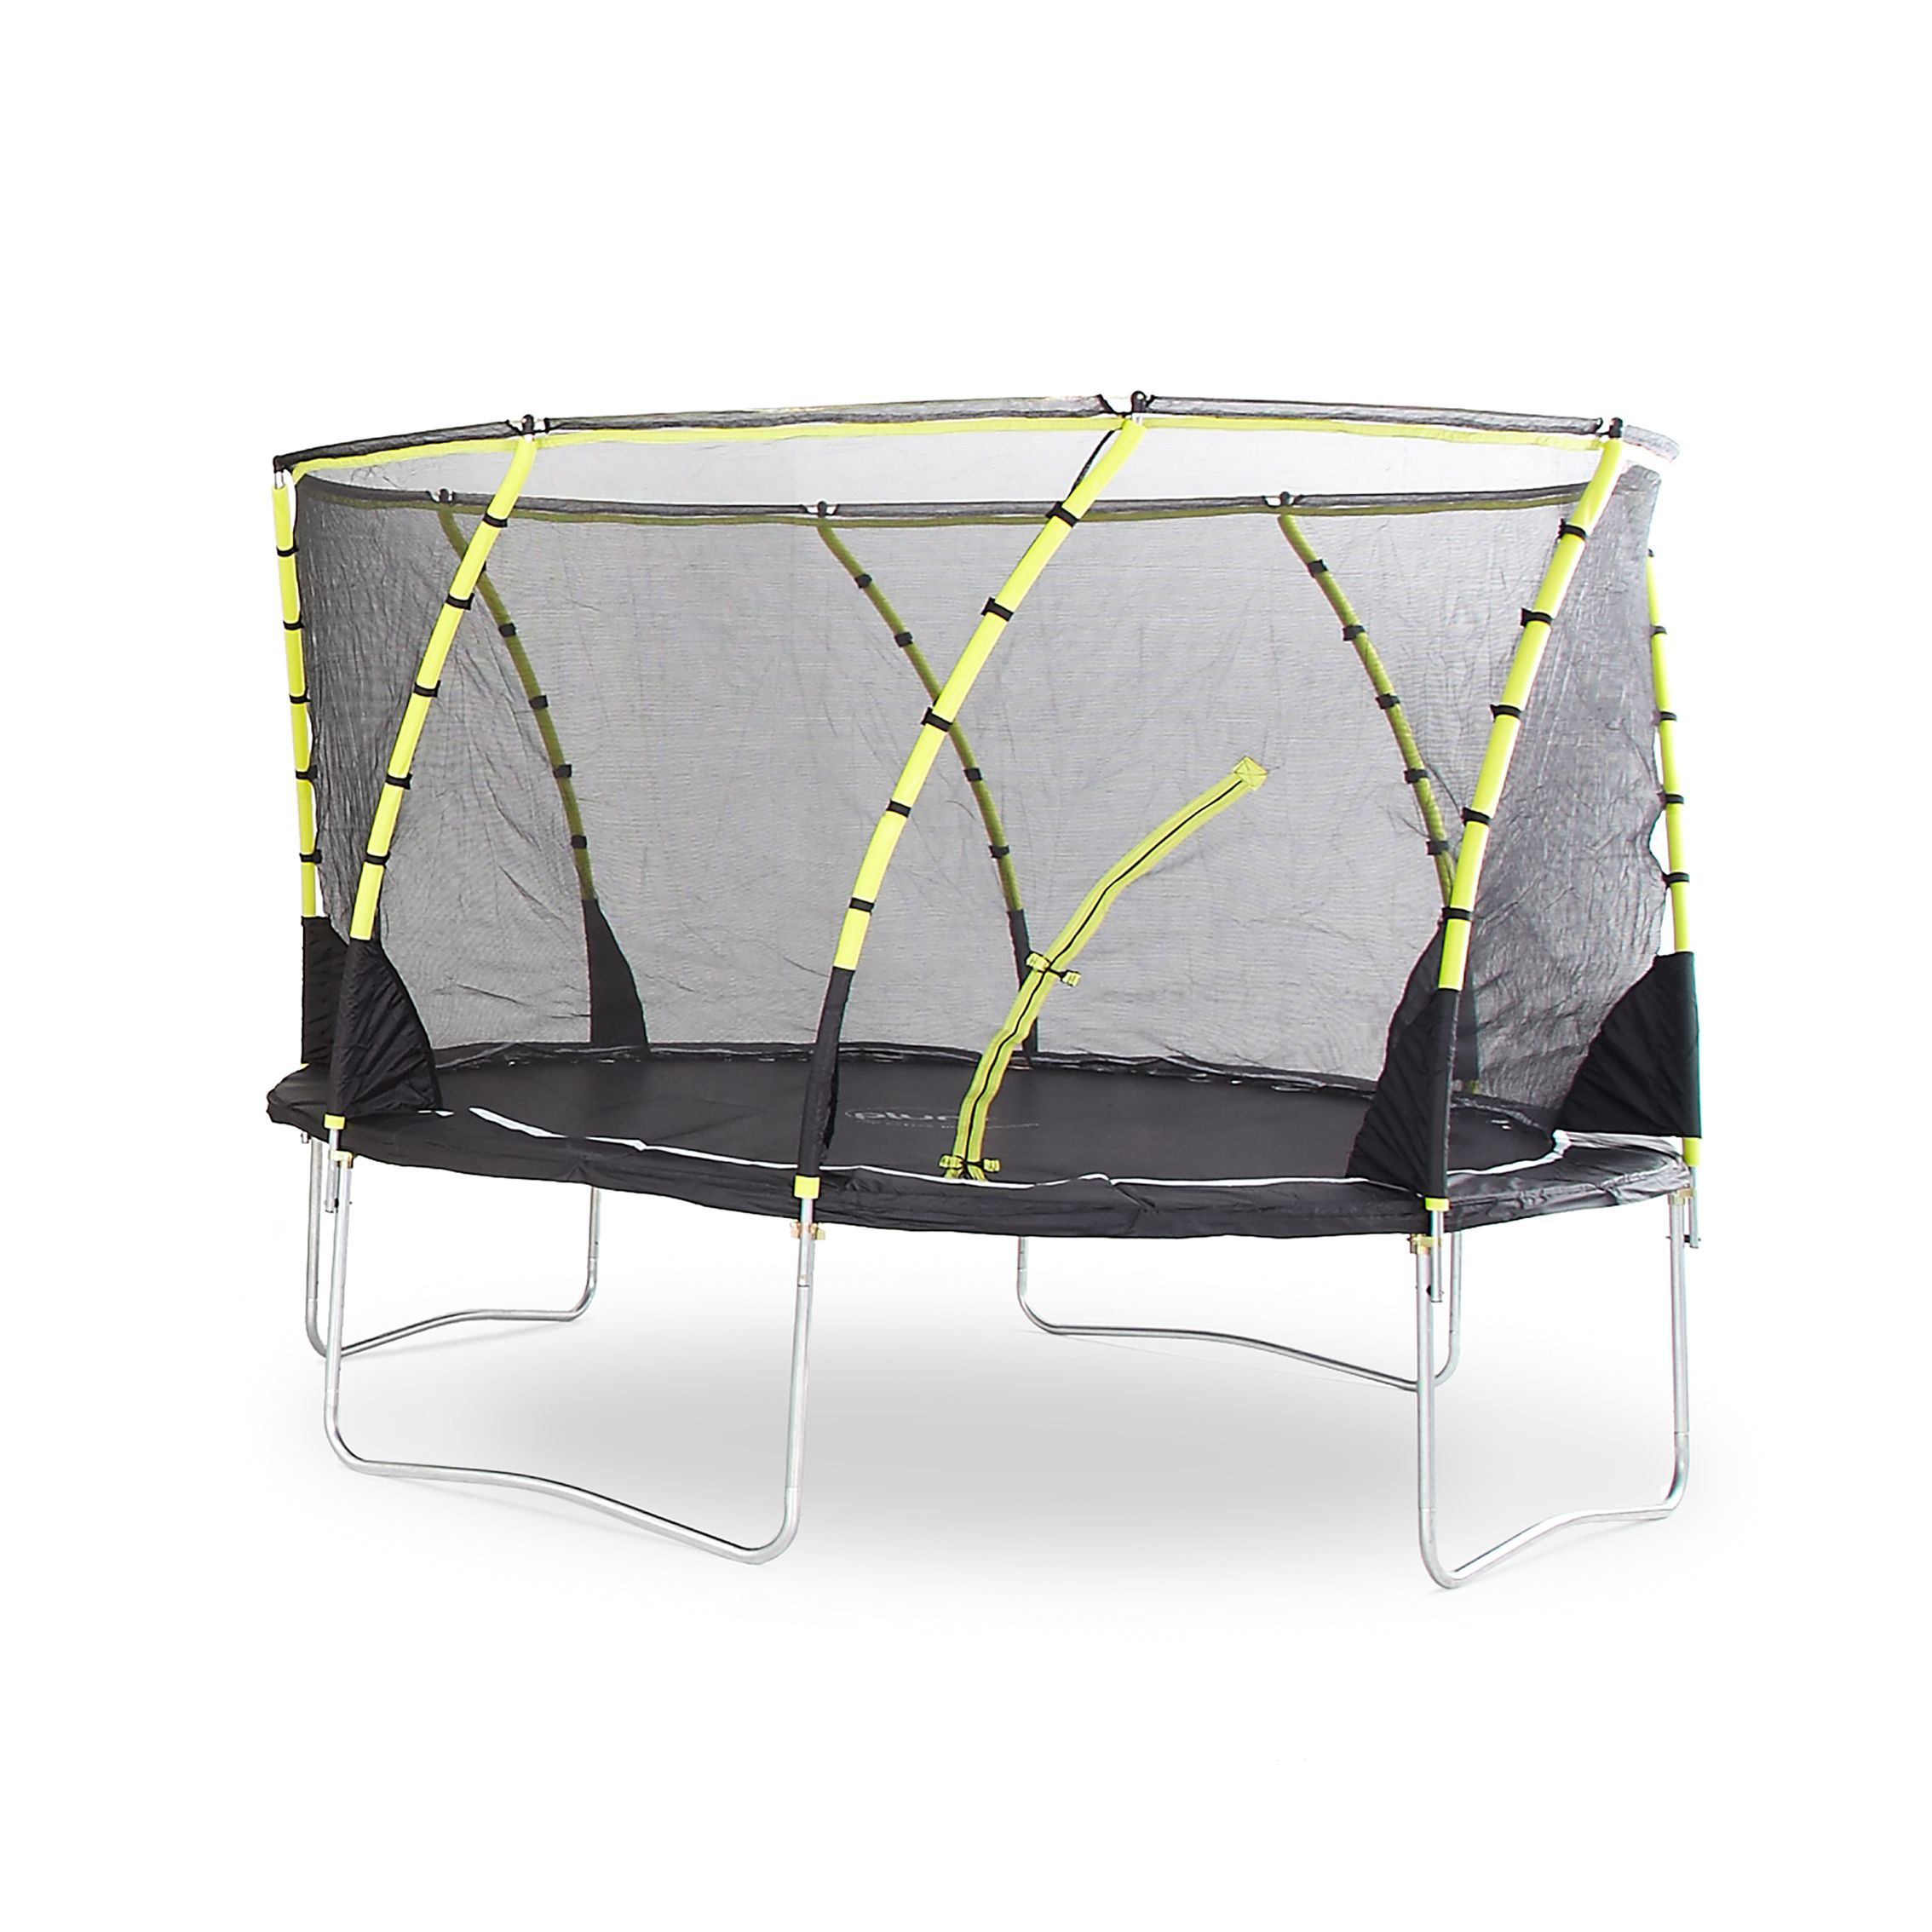 Trampoline Springs B Q: Plum Whirlwind Black & Green 12 Ft Trampoline & Enclosure